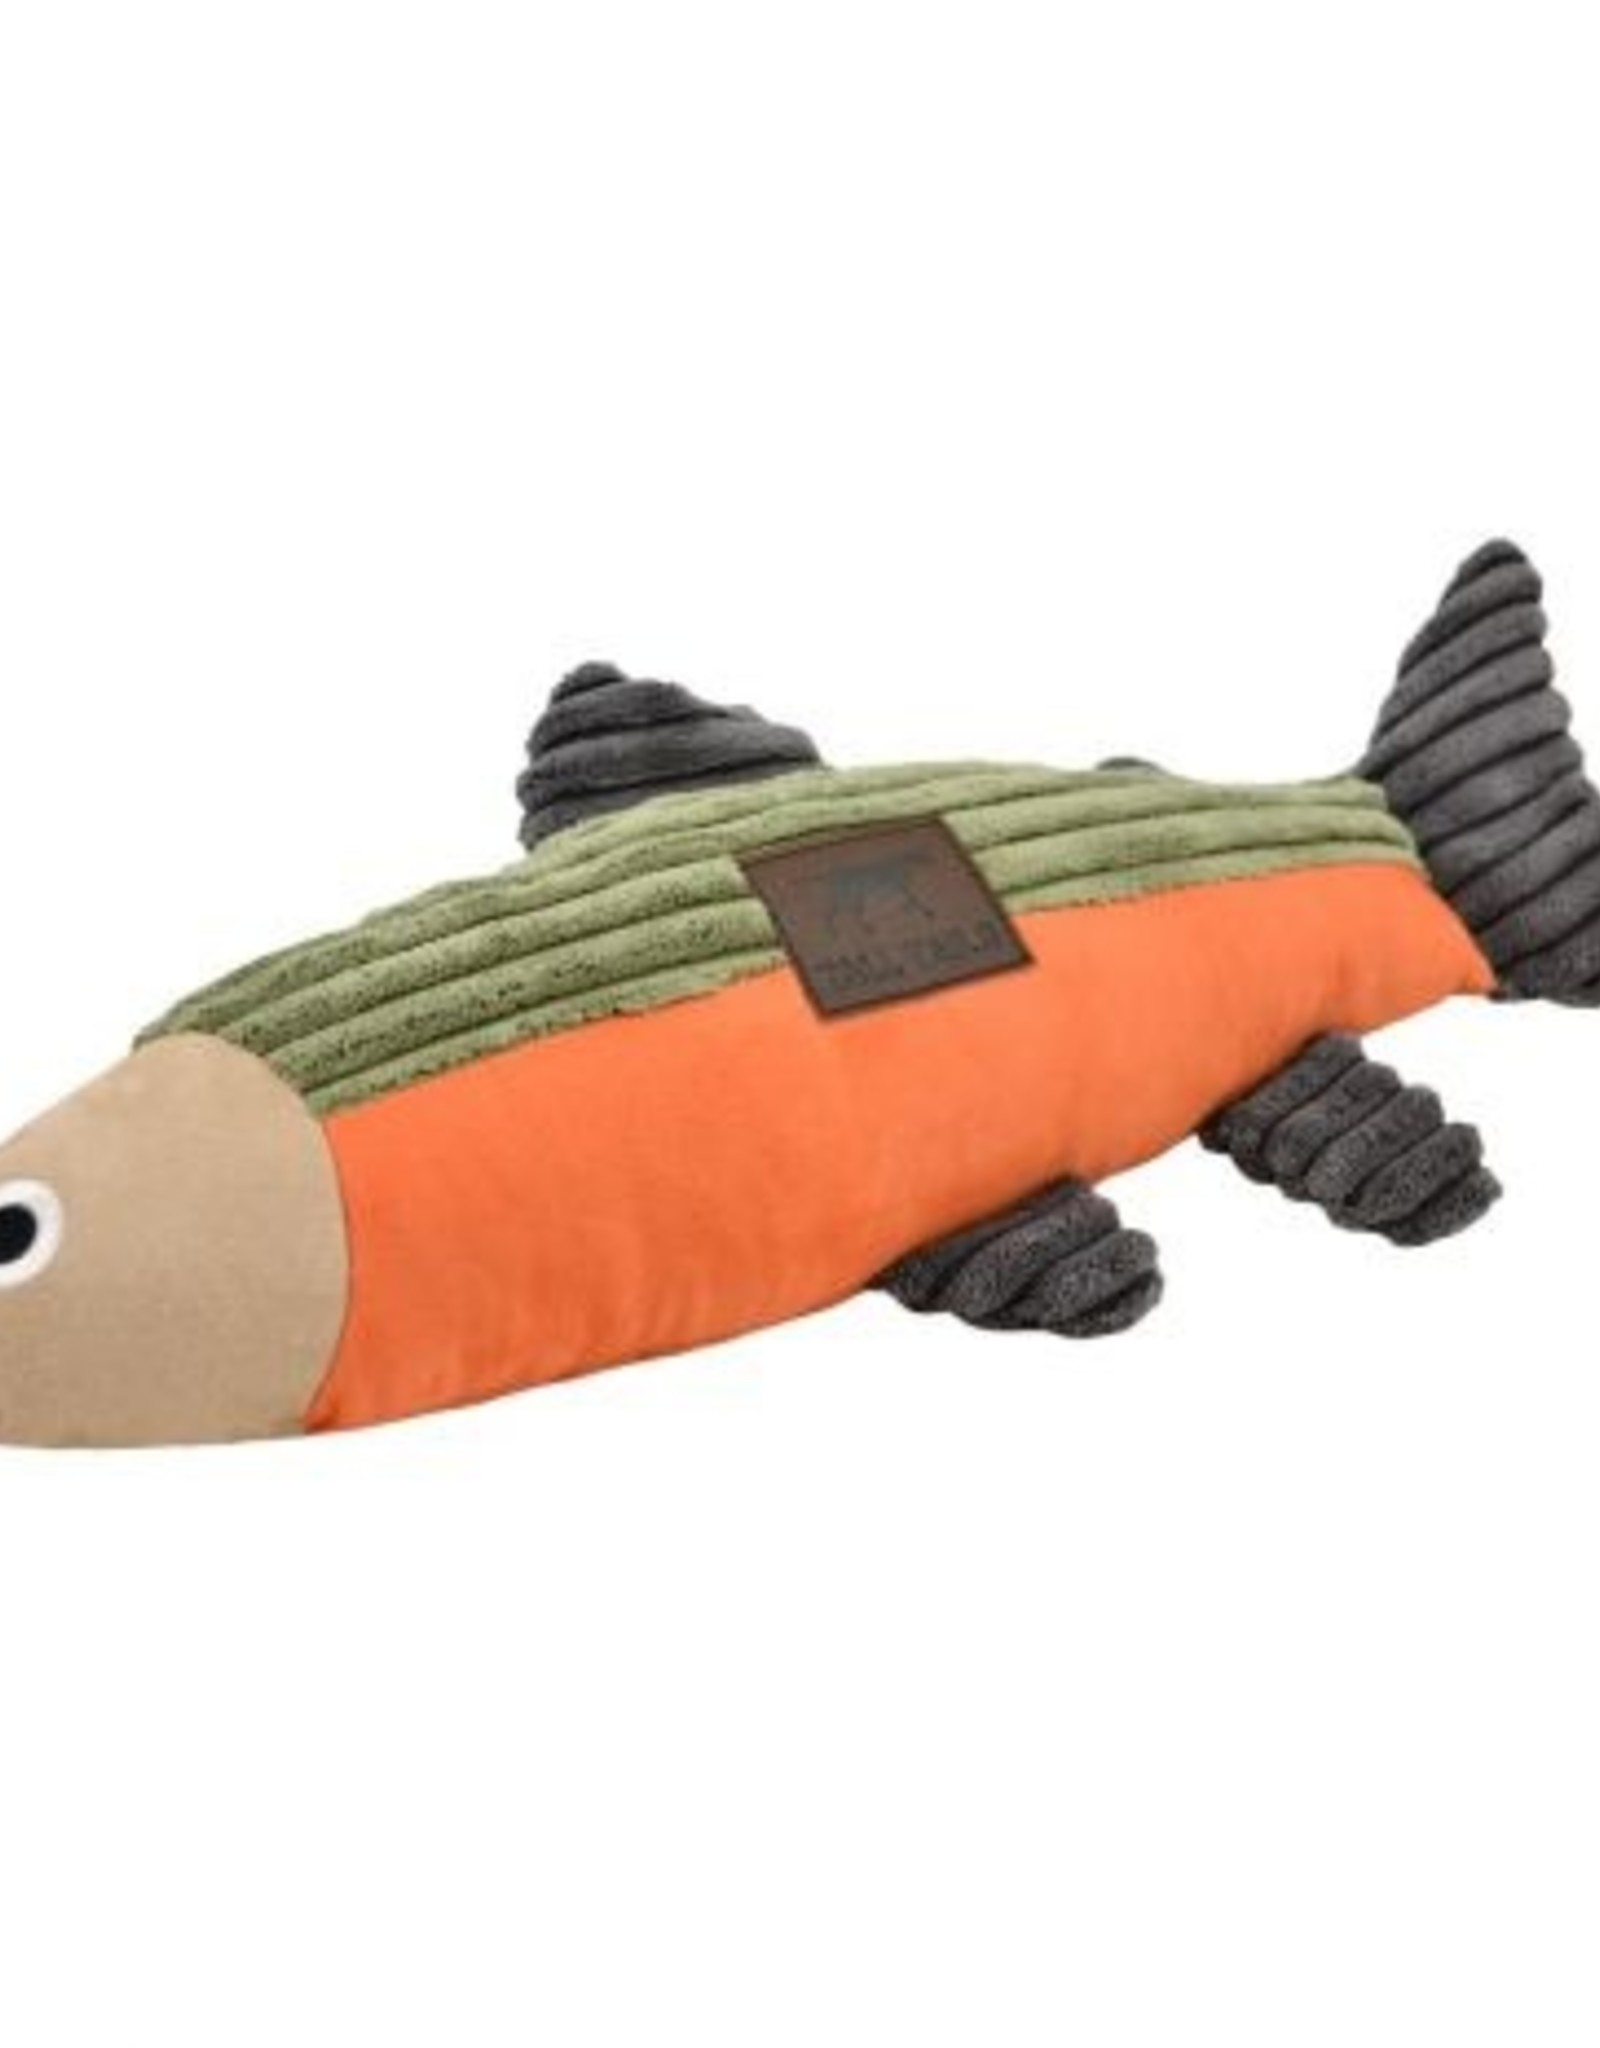 Tall Tails Tall Tails Plush Fish with Squeaker L